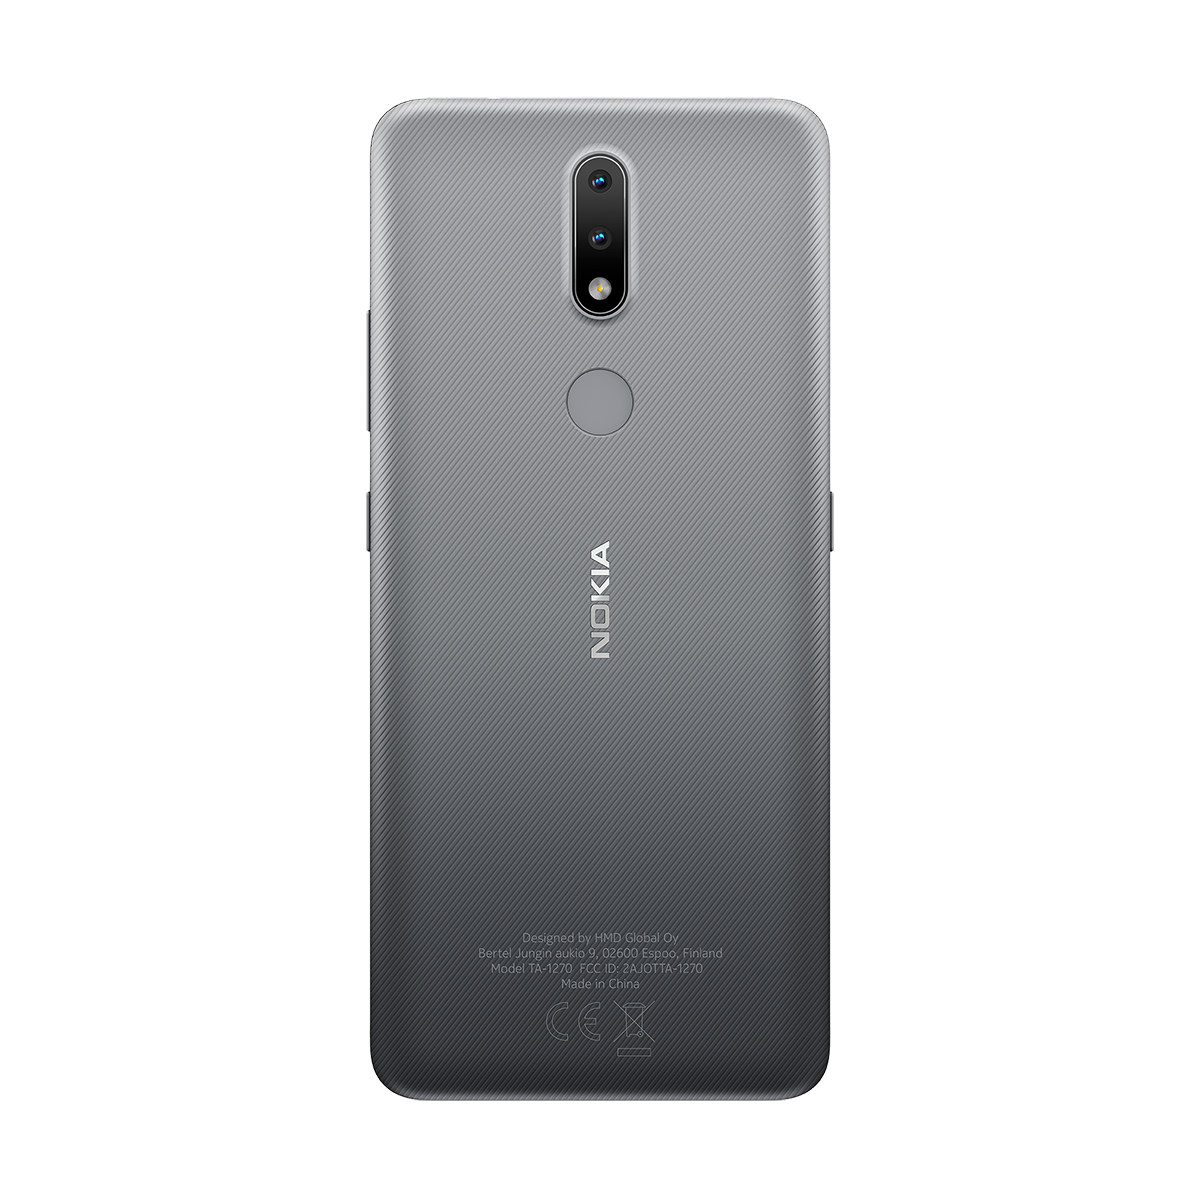 Nokia 2.4 Launched In India With Helio P22 SOC For Rs 10,399